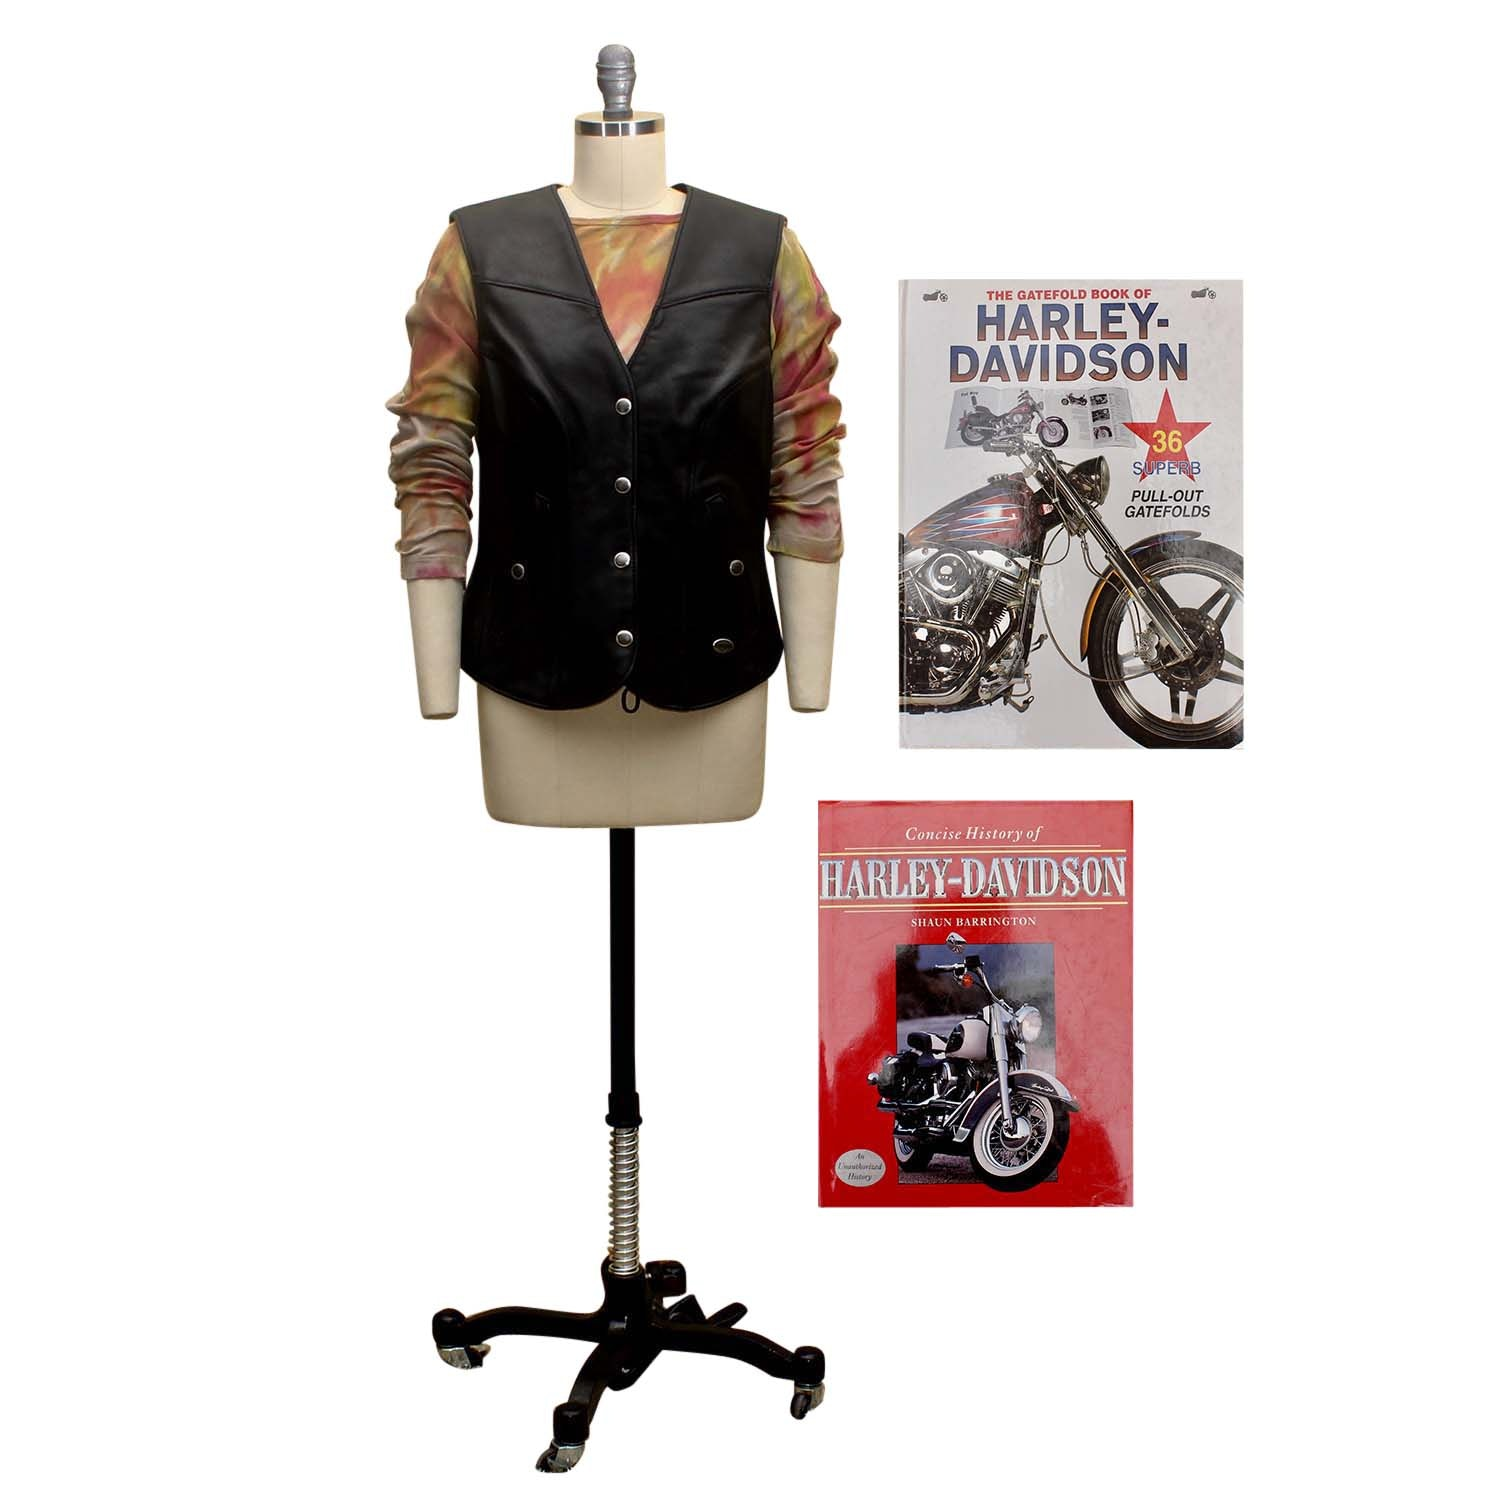 Harley-Davidson Leather Vest And Coffee Table Books